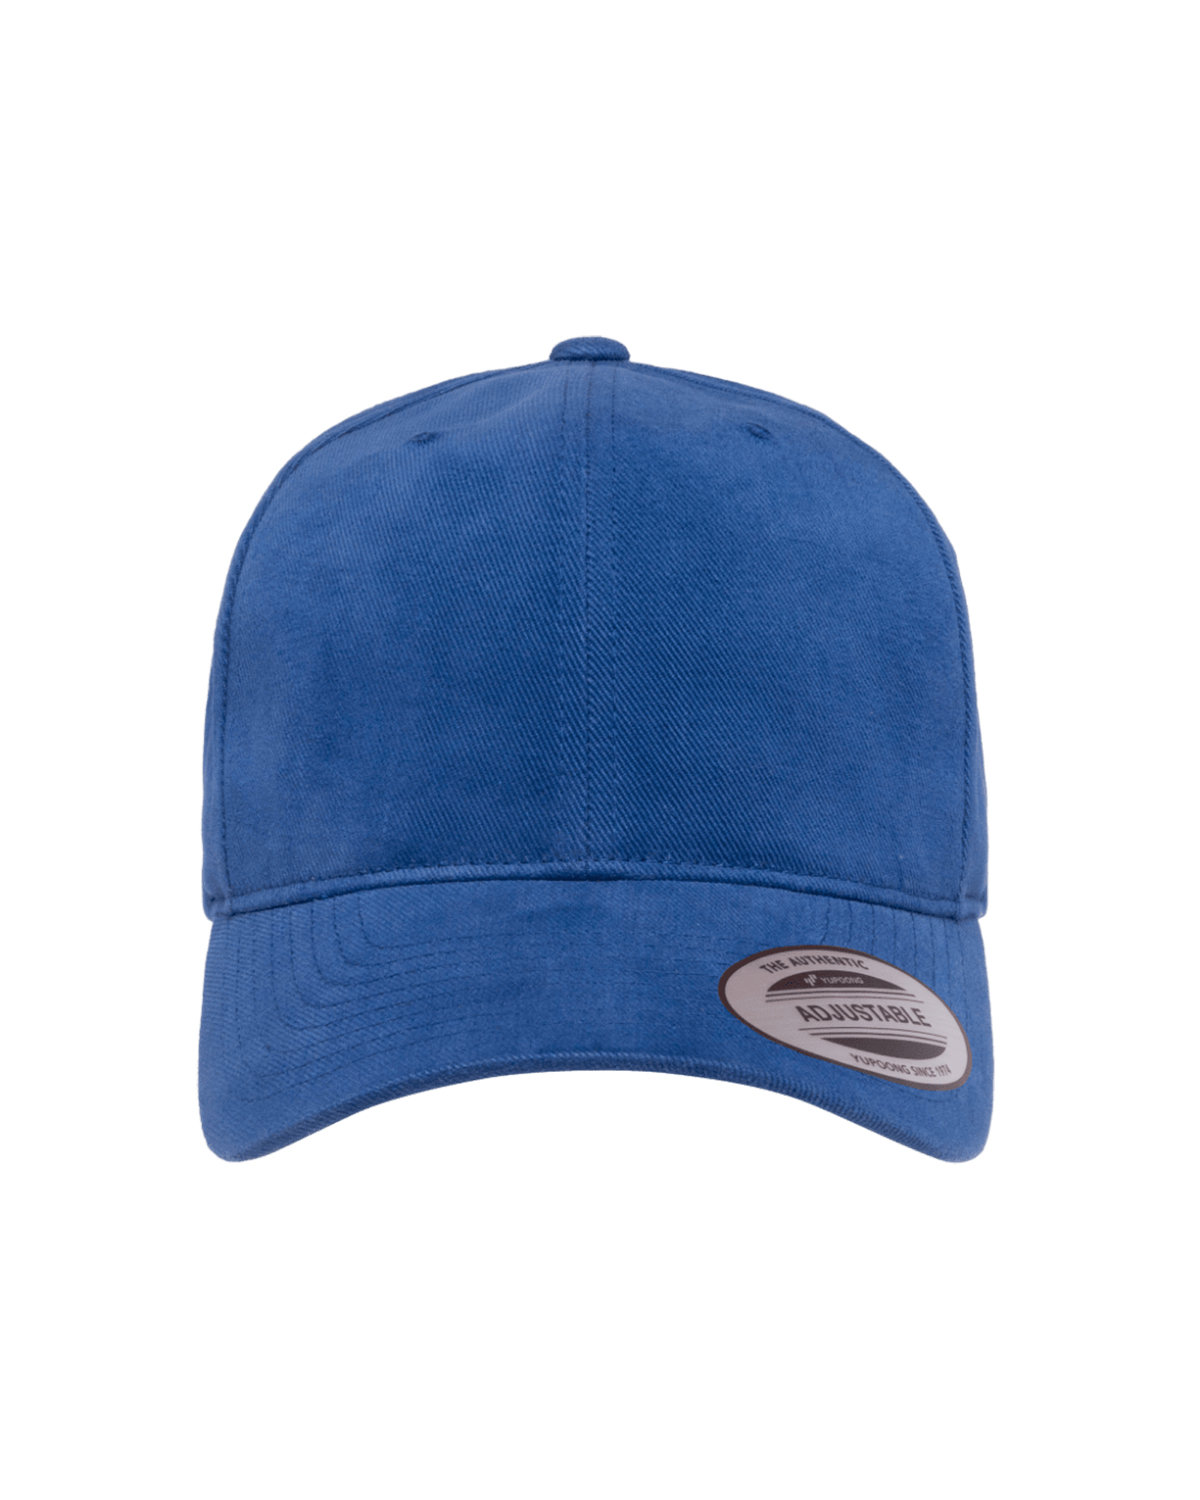 Yupoong Adult Brushed Cotton Twill Mid-Profile Cap ROYAL